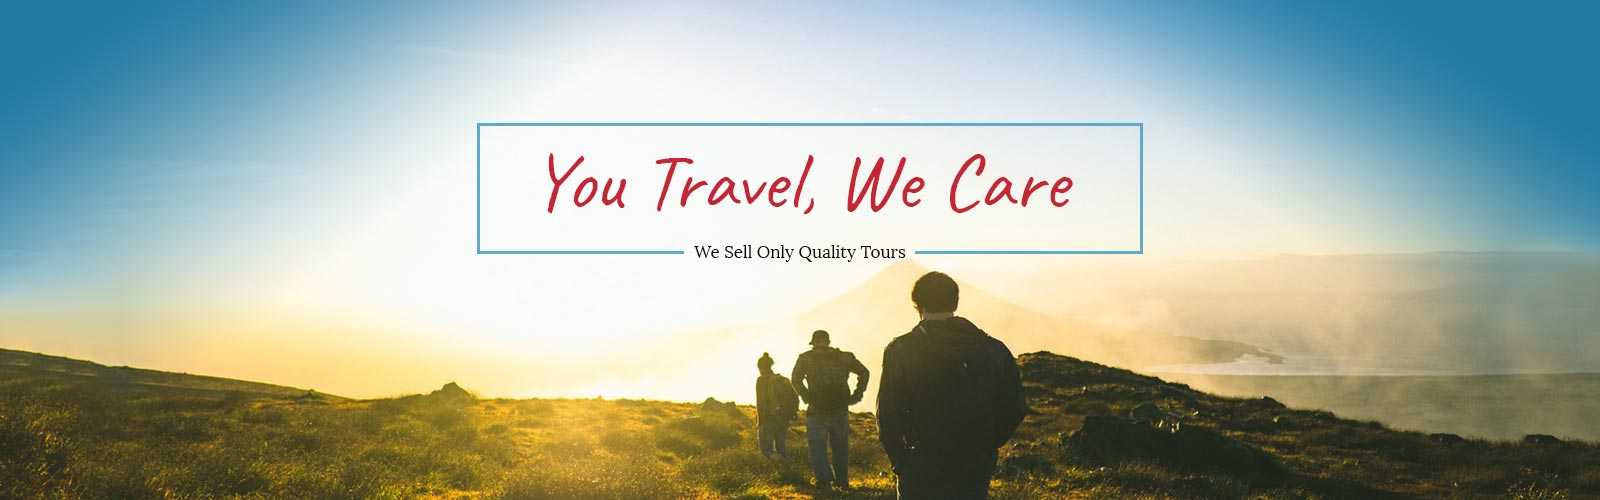 You Travel, We Care